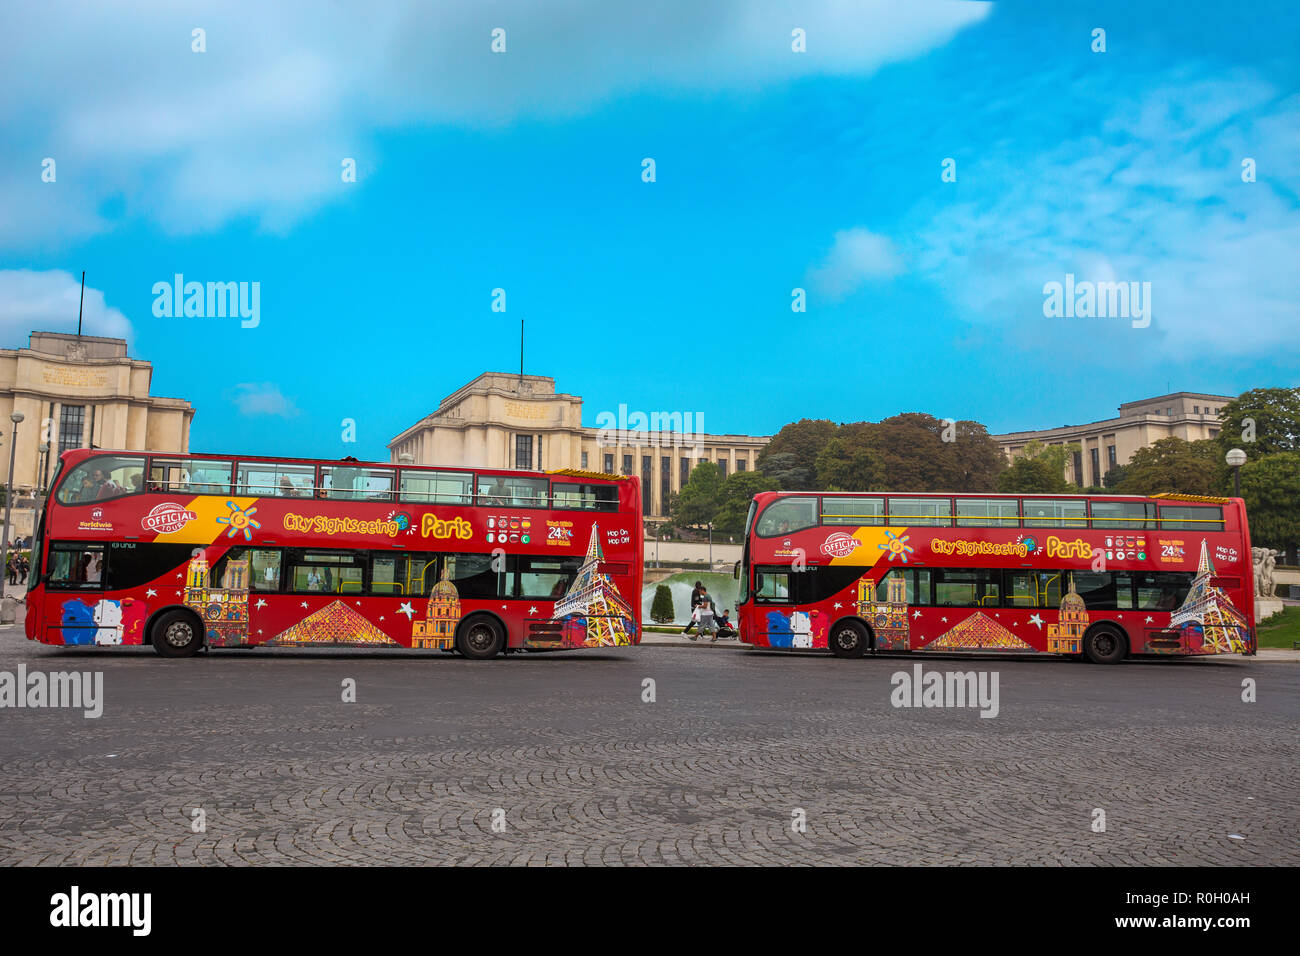 PARIS, FRANCE, SEPTEMBER 5, 2018 - View of Citysightseeing Bus in Paris, France, in a sunny day with blue sky. - Stock Image